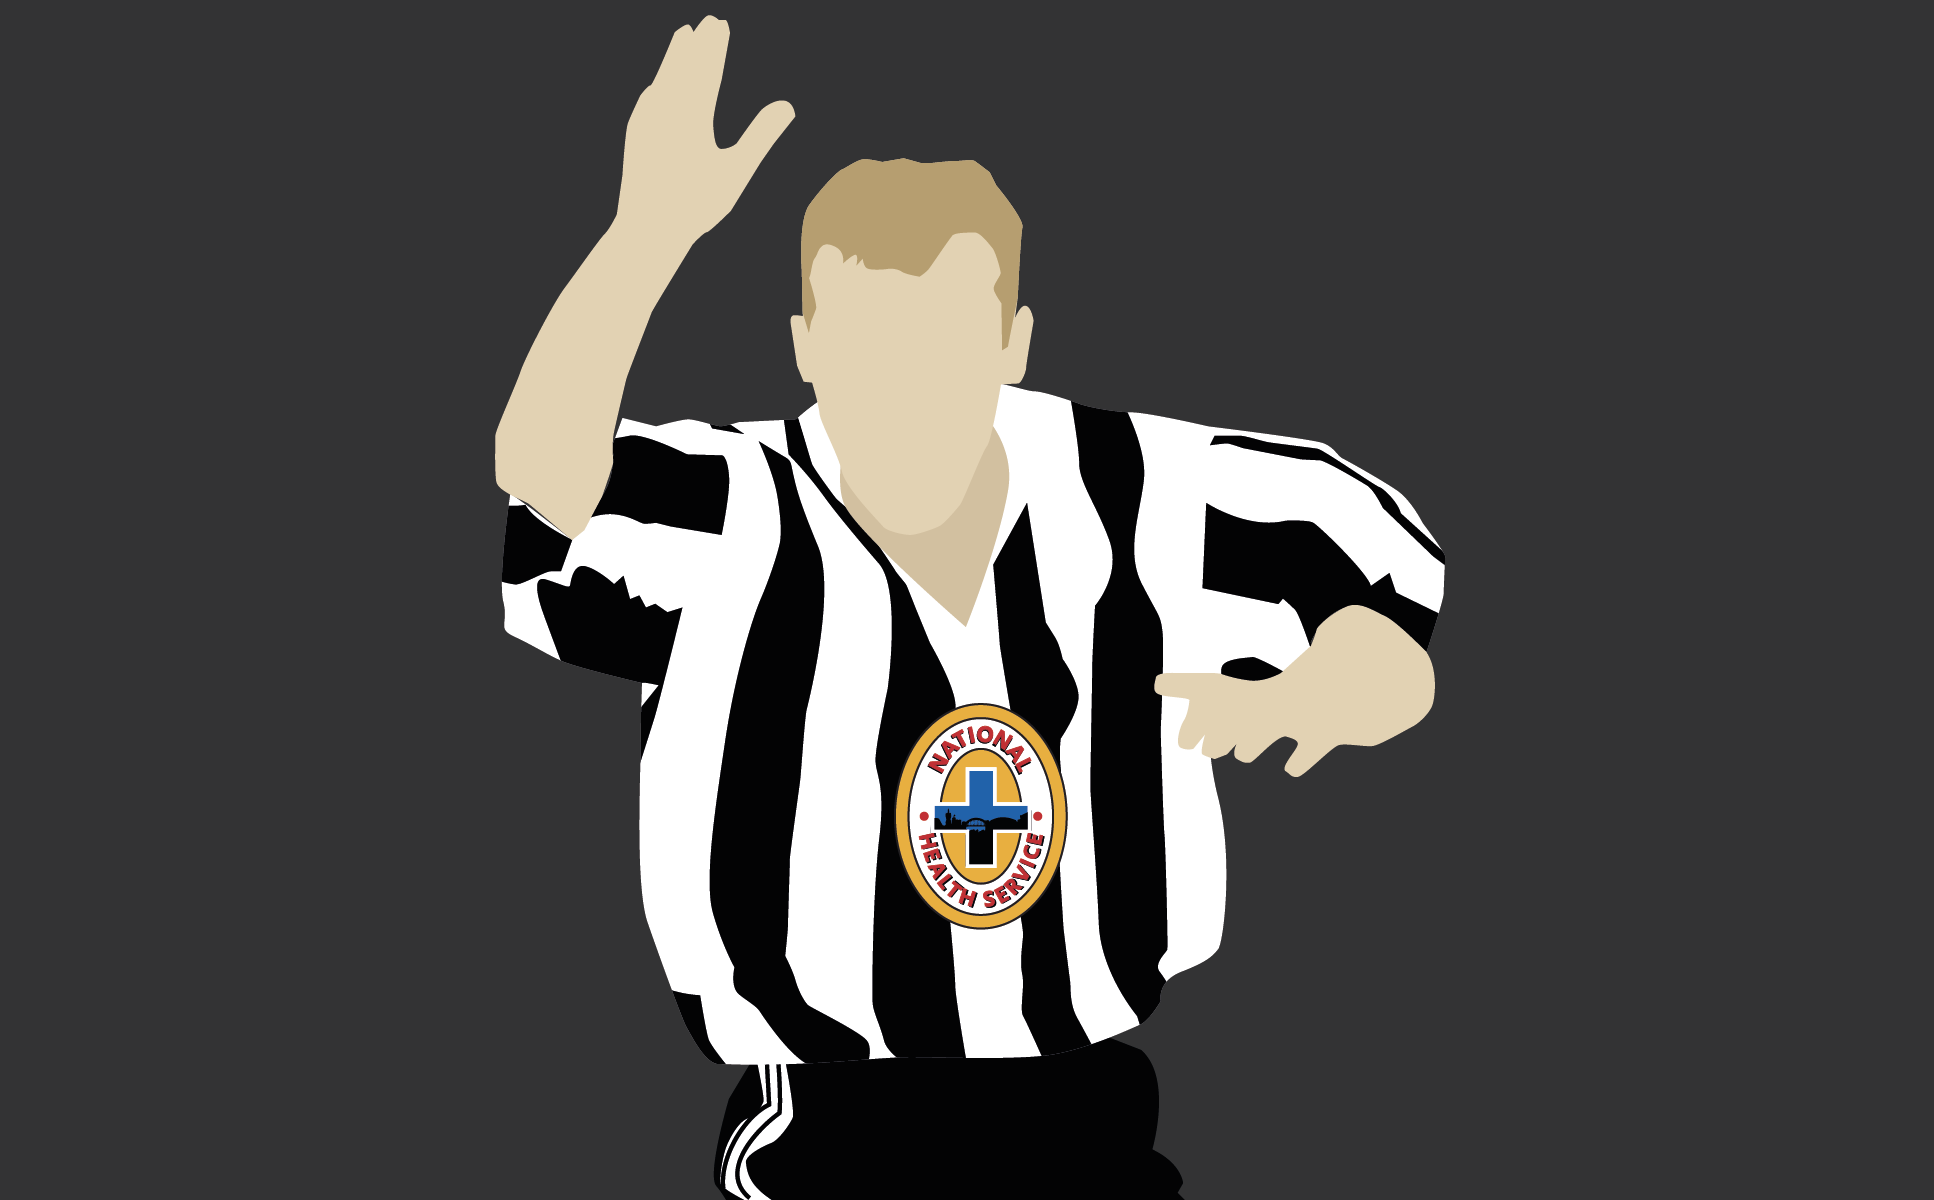 Alan Shearer in a Newcastle United 1995-97 shirt, manufactured by Adidas.